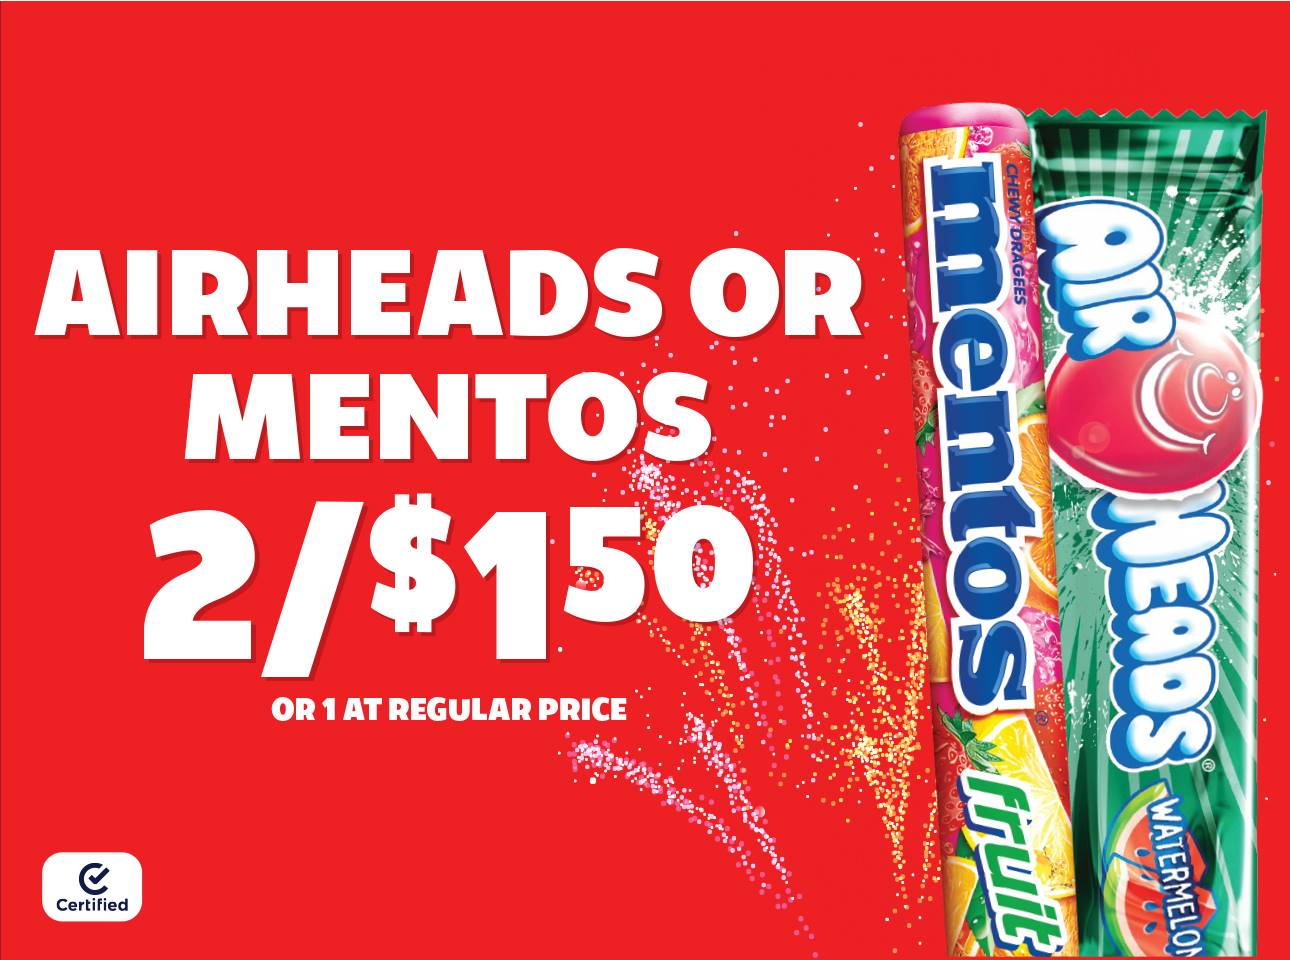 Airheads or Mentos 2 for $1.50 or 1 at Reg Price